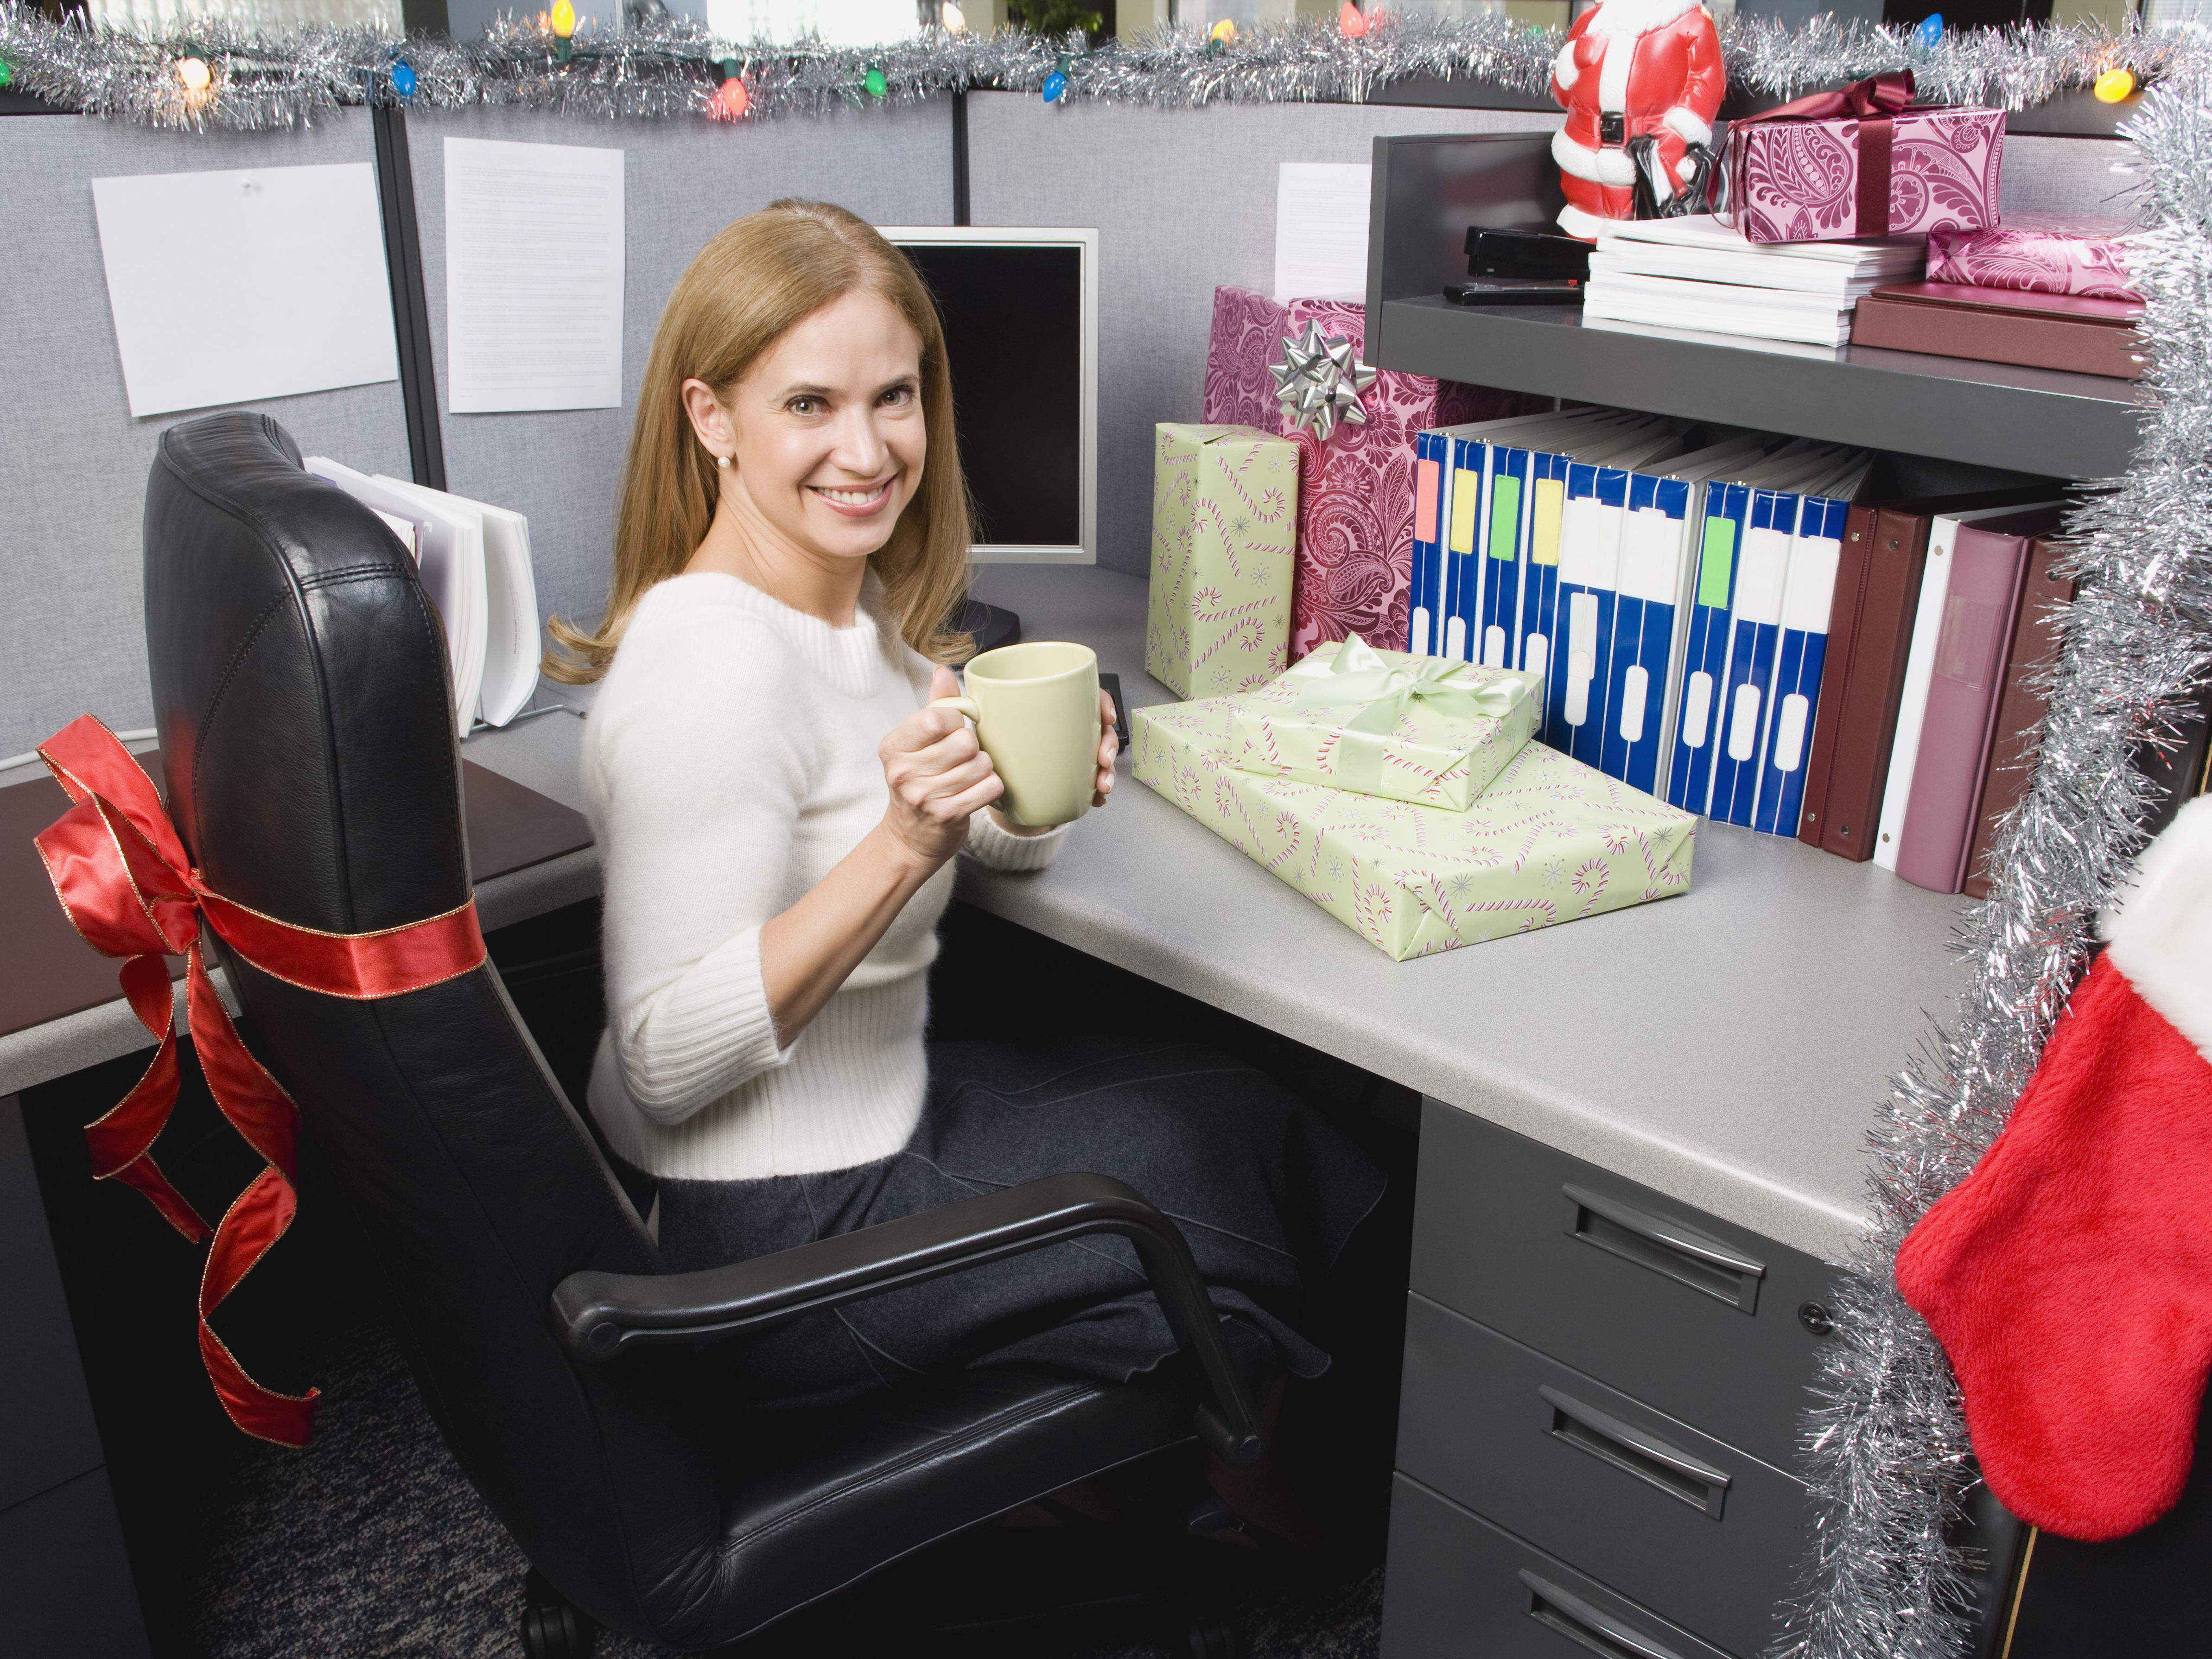 10 holiday decorating ideas for your office cubicle.htm how to prepare your business for the christmas season  business for the christmas season